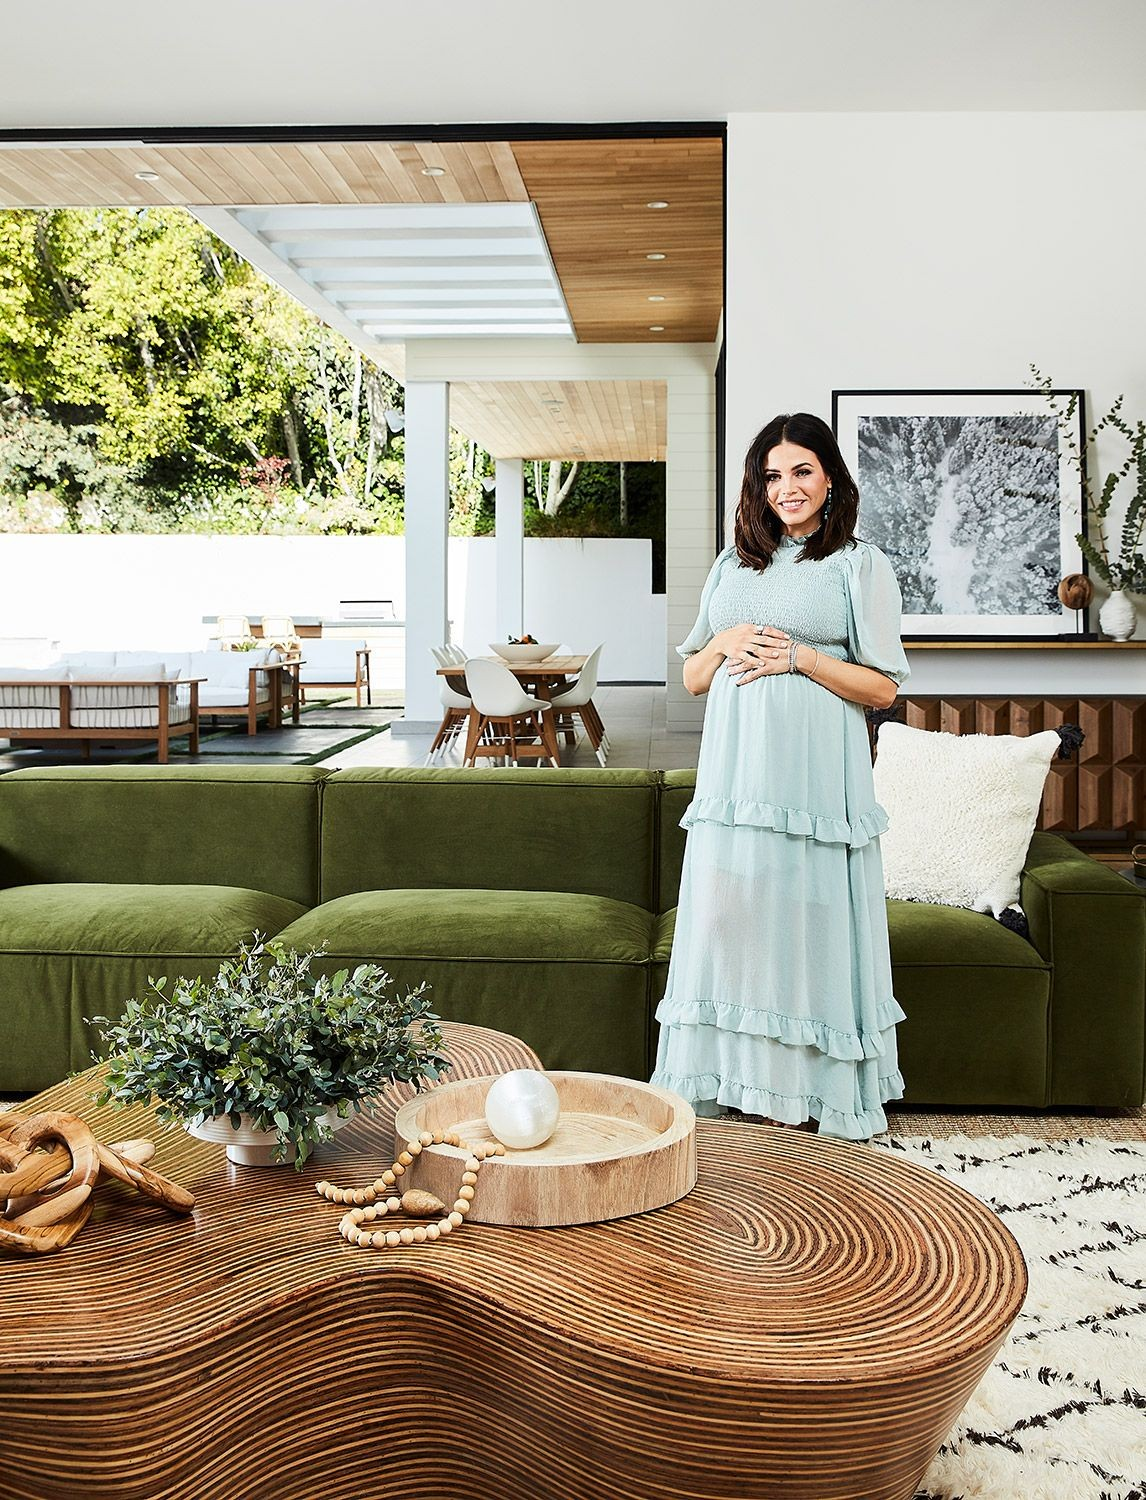 5 Outstandingly Designed Celebrity Homes to Take Inspiration From 3